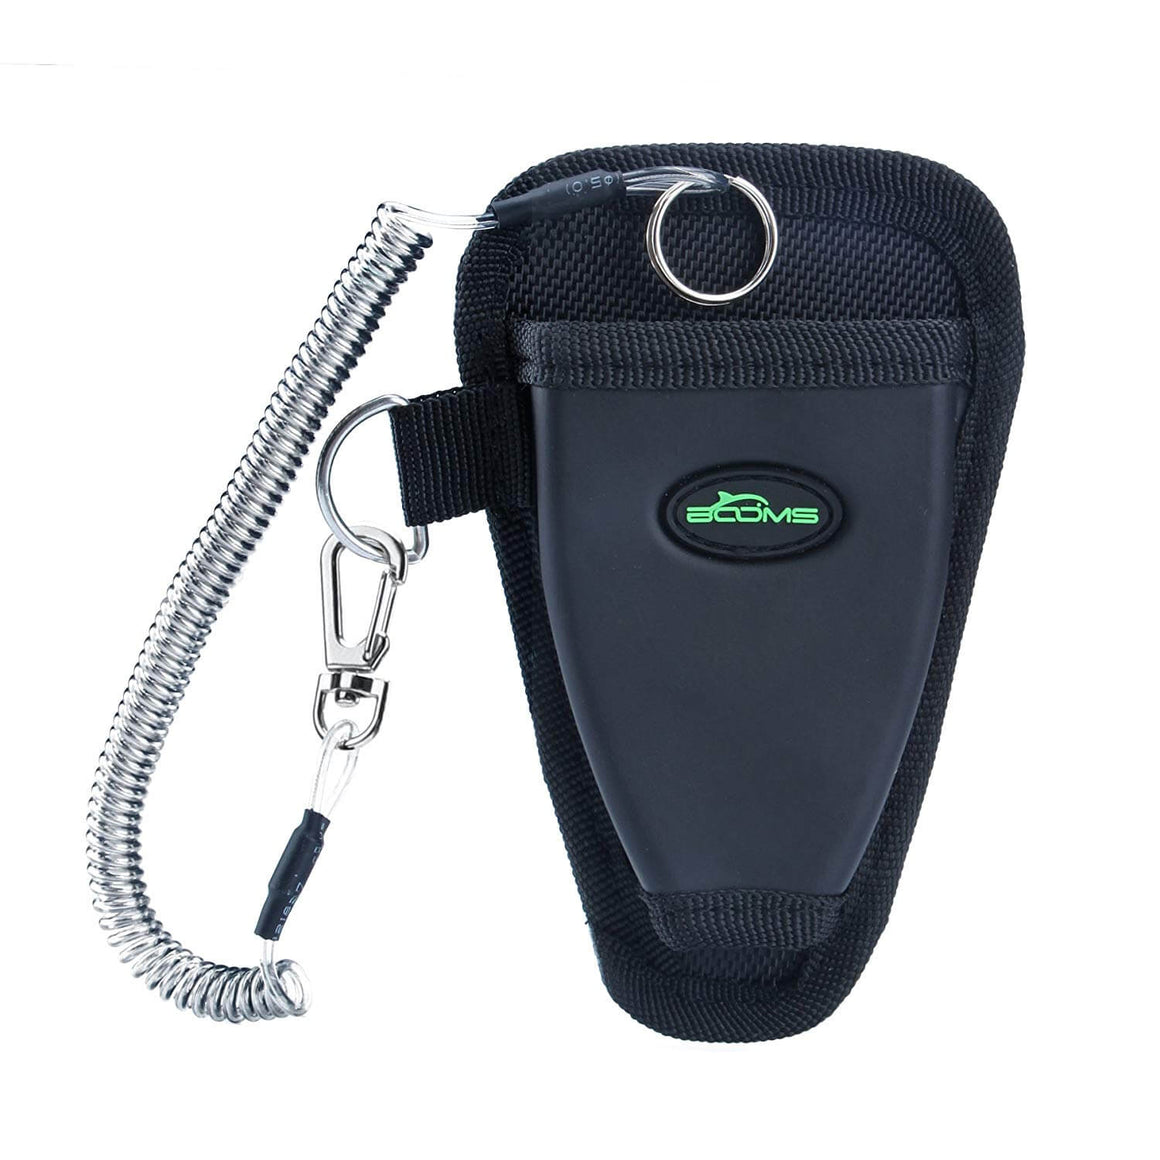 Booms Fishing P01 Fishing Pliers Sheath Suitable Comes with Coiled Lanyard - Booms Fishing Offical